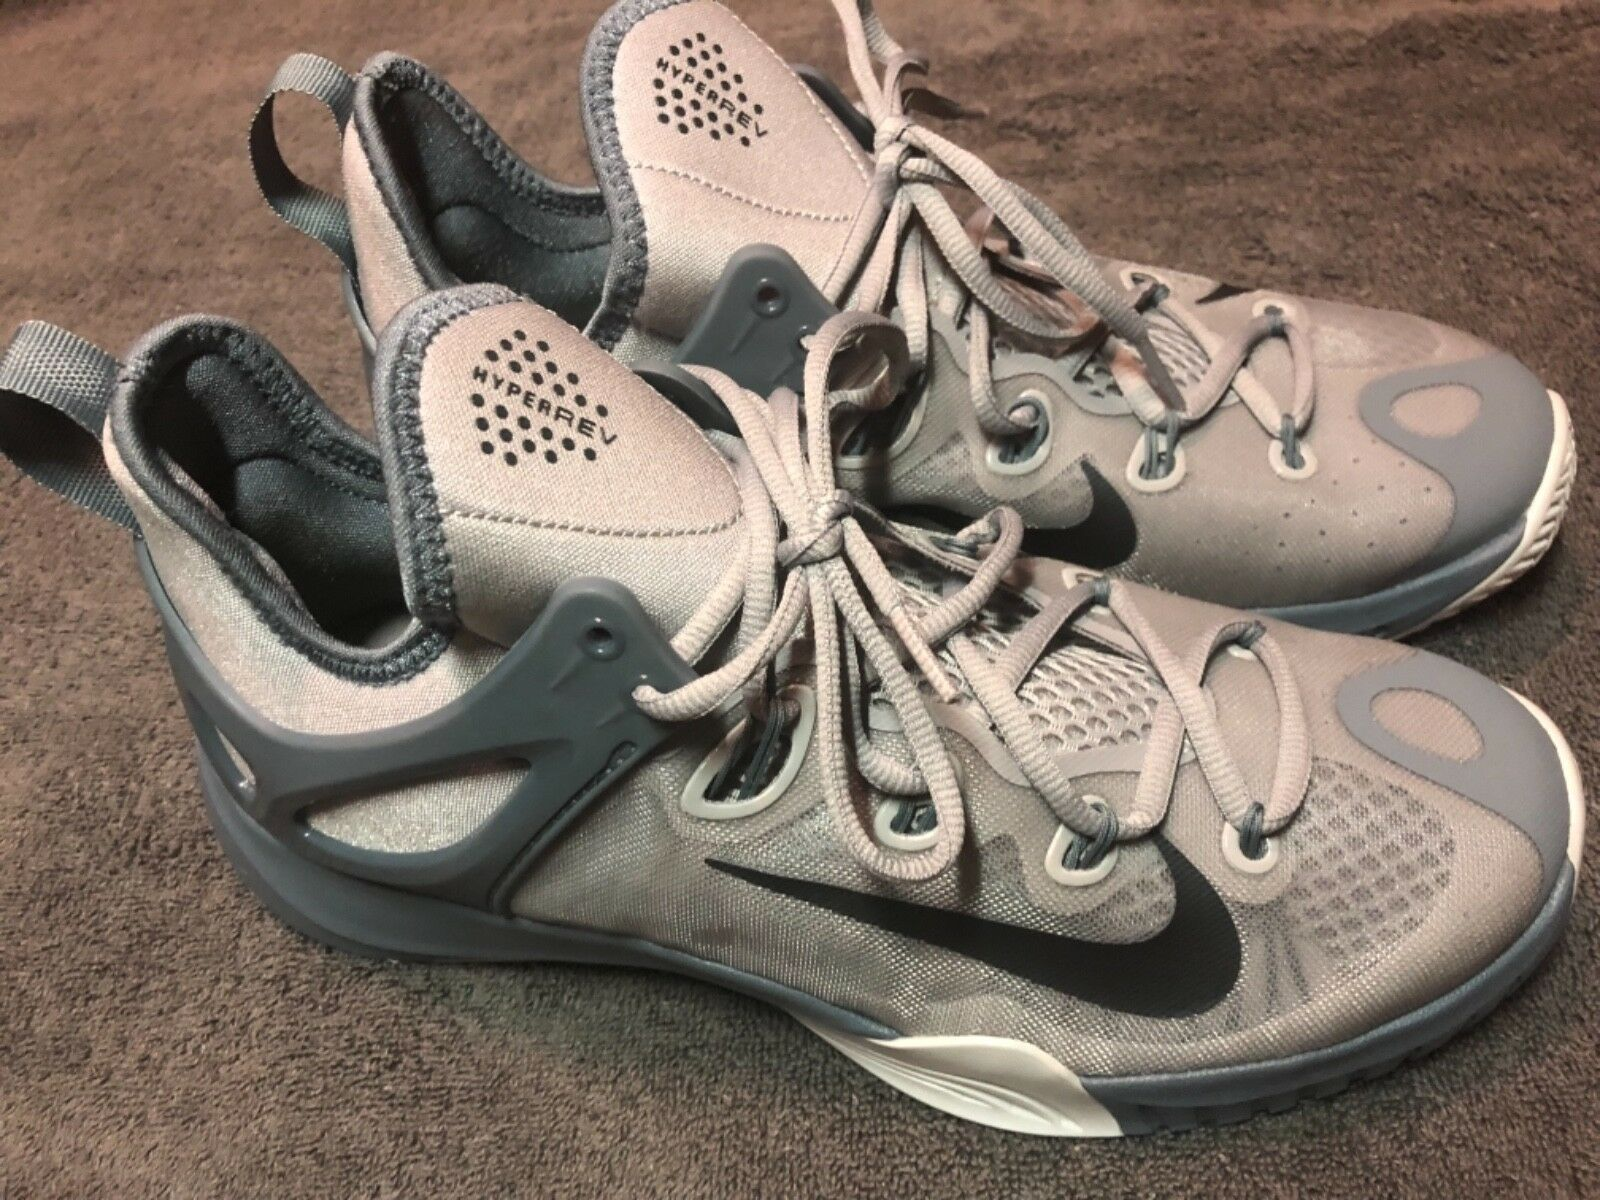 Uomo Nike Zoom HyperRev 2015 Basketball Shoes - (705370 040) Wolf Grey - Shoes Size 9 e67bf7